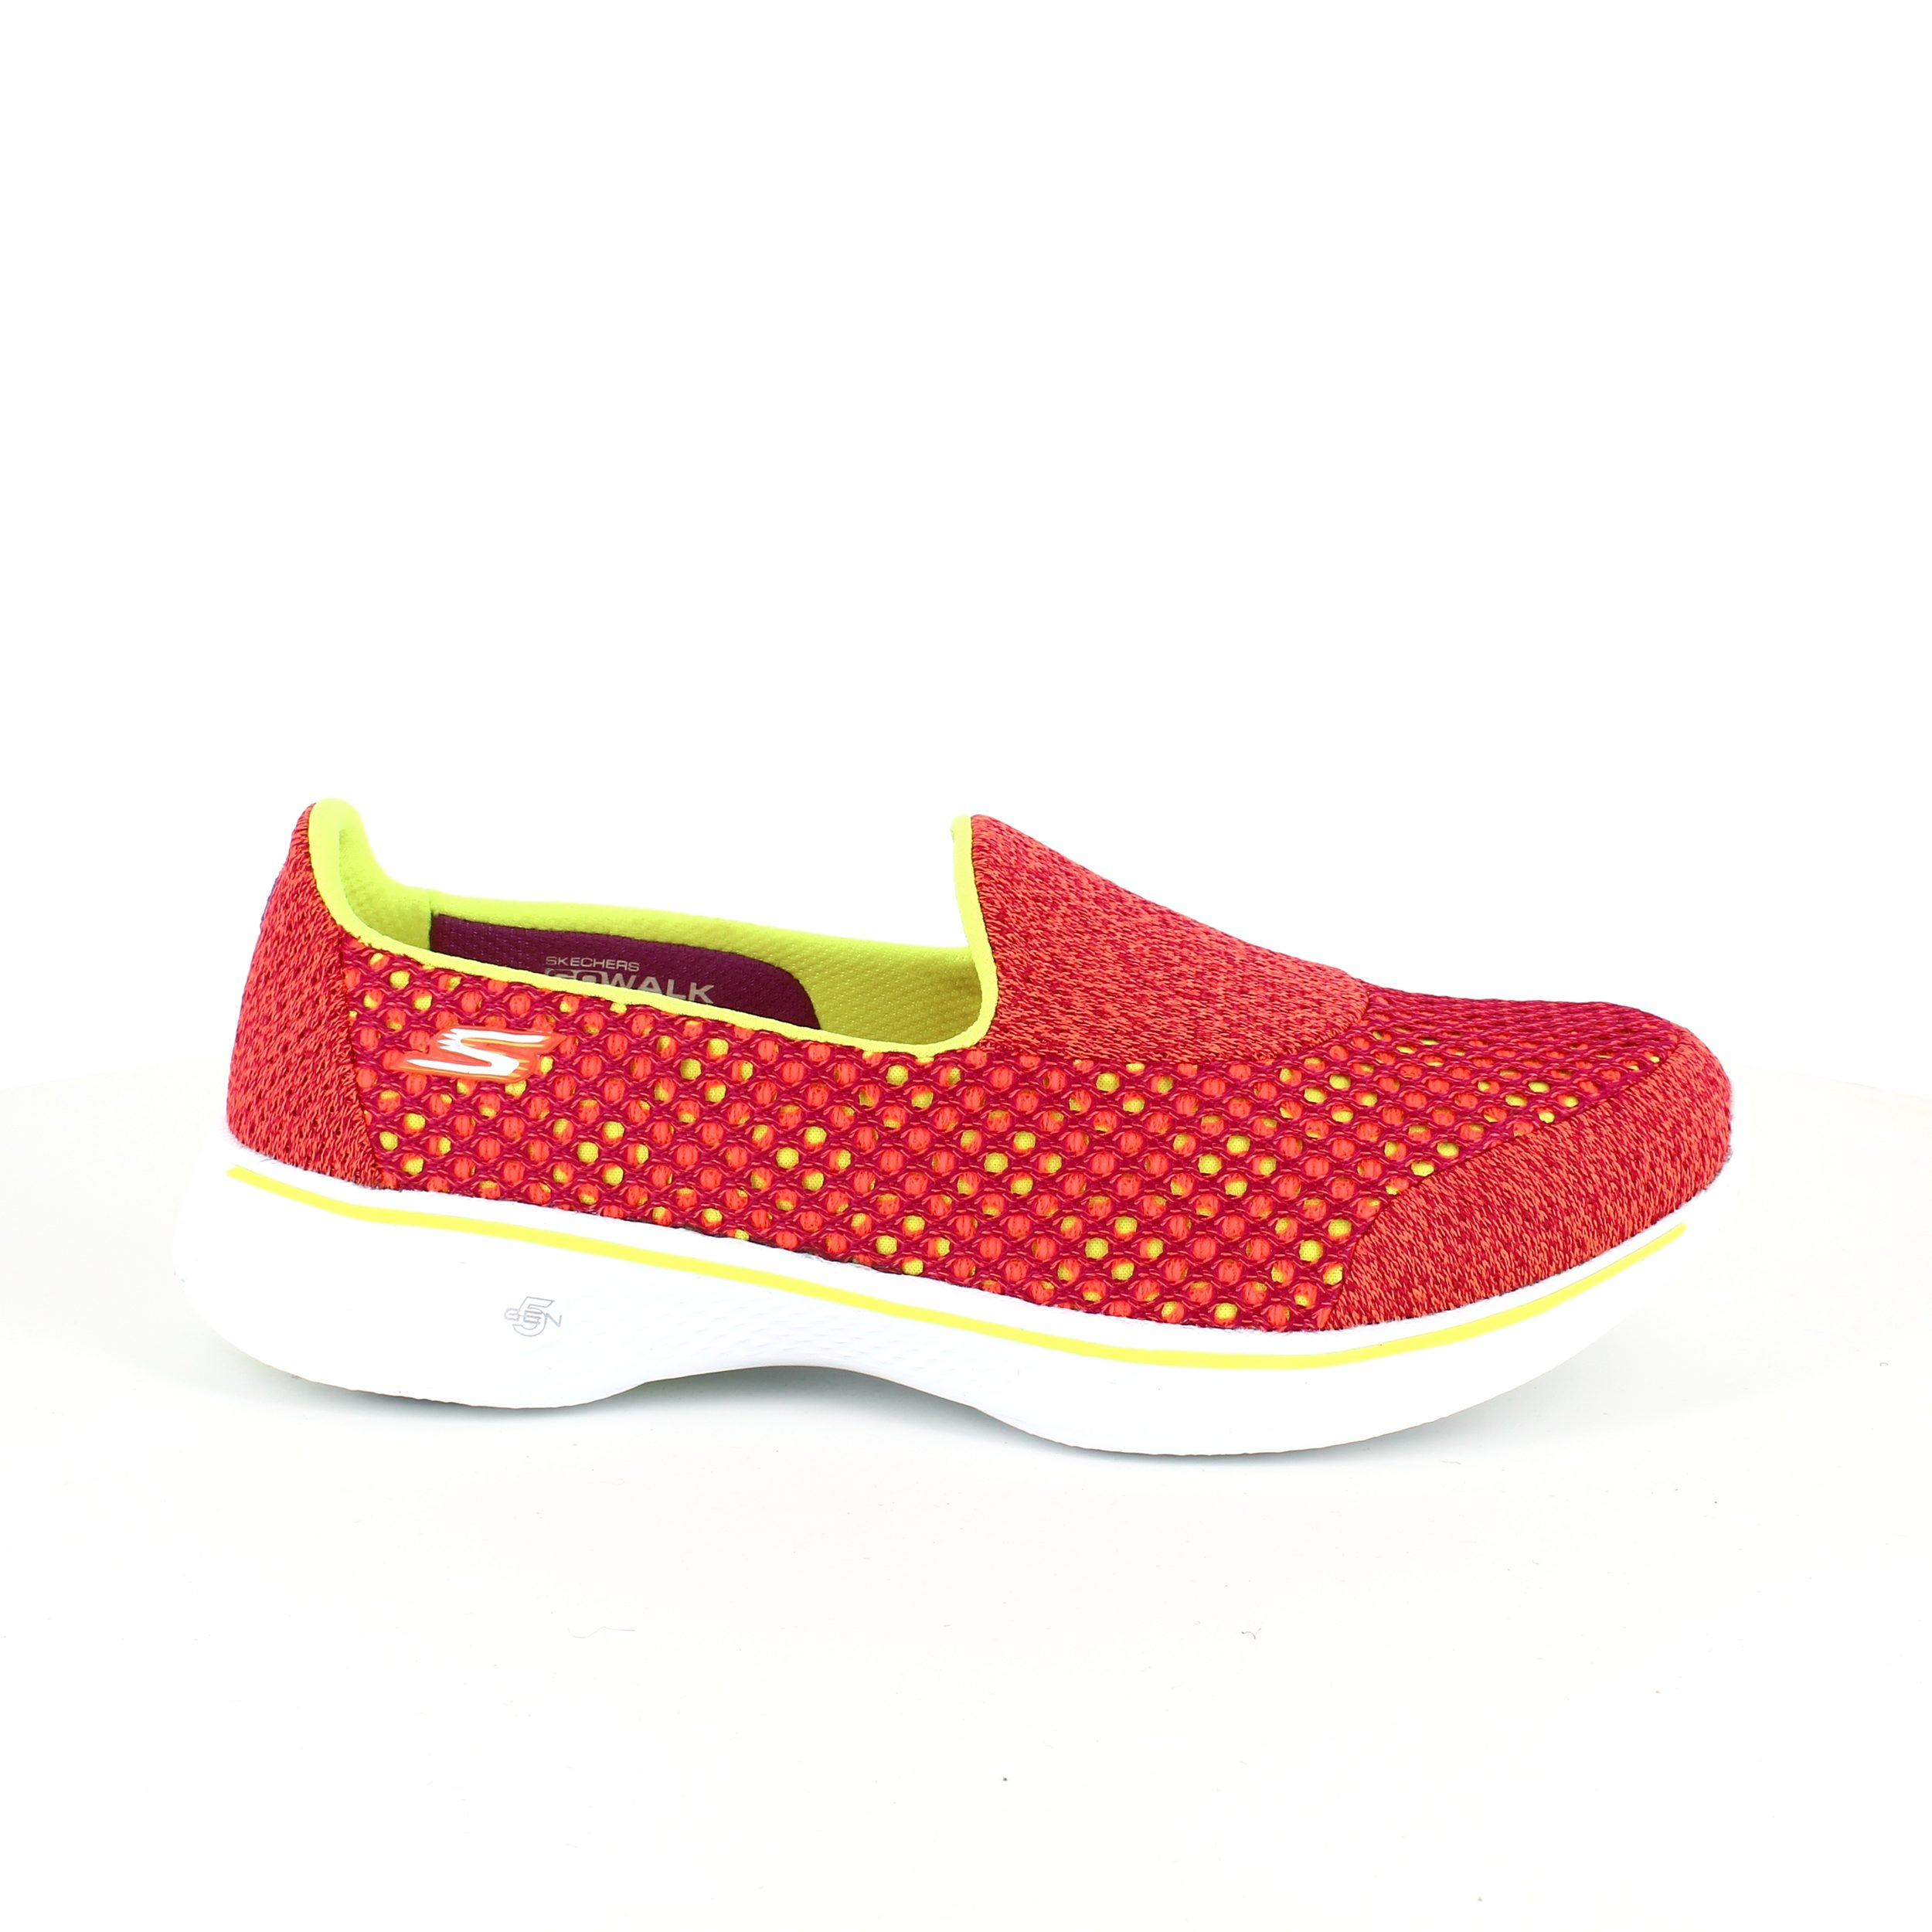 Image of   Orange ballerina fra Skechers, Go walk 4 - 37,5